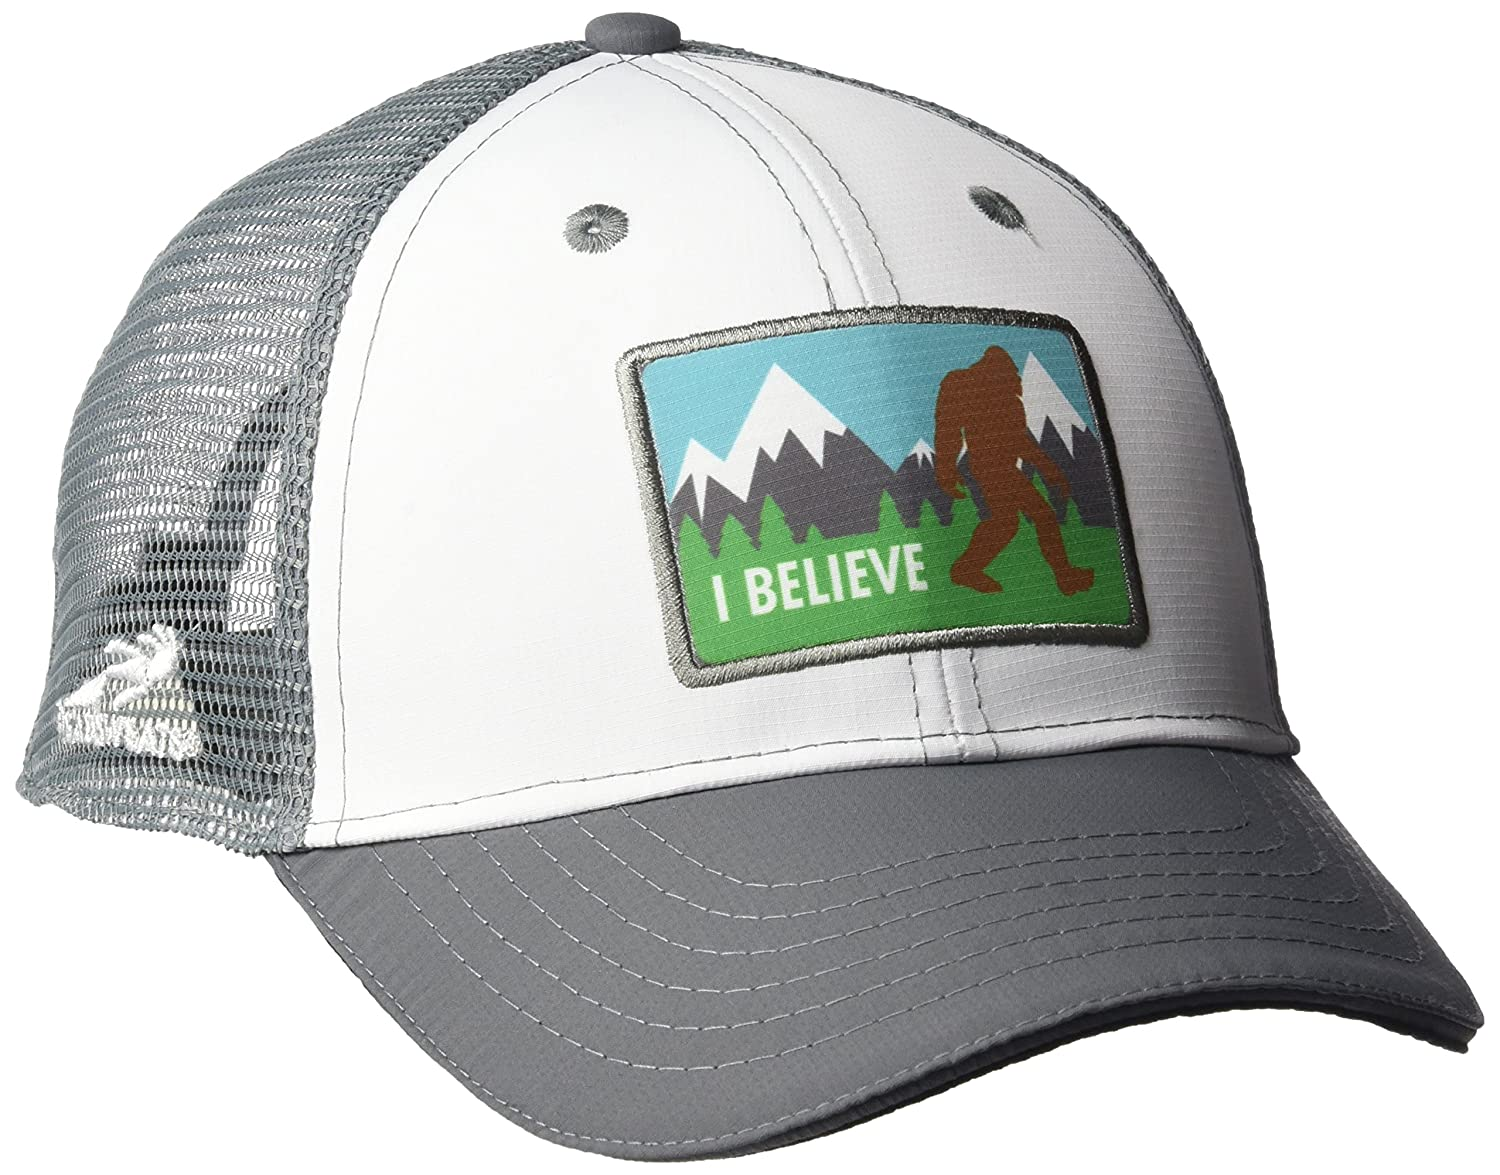 Headsweats Bigfoot Trucker Hat on Amazon